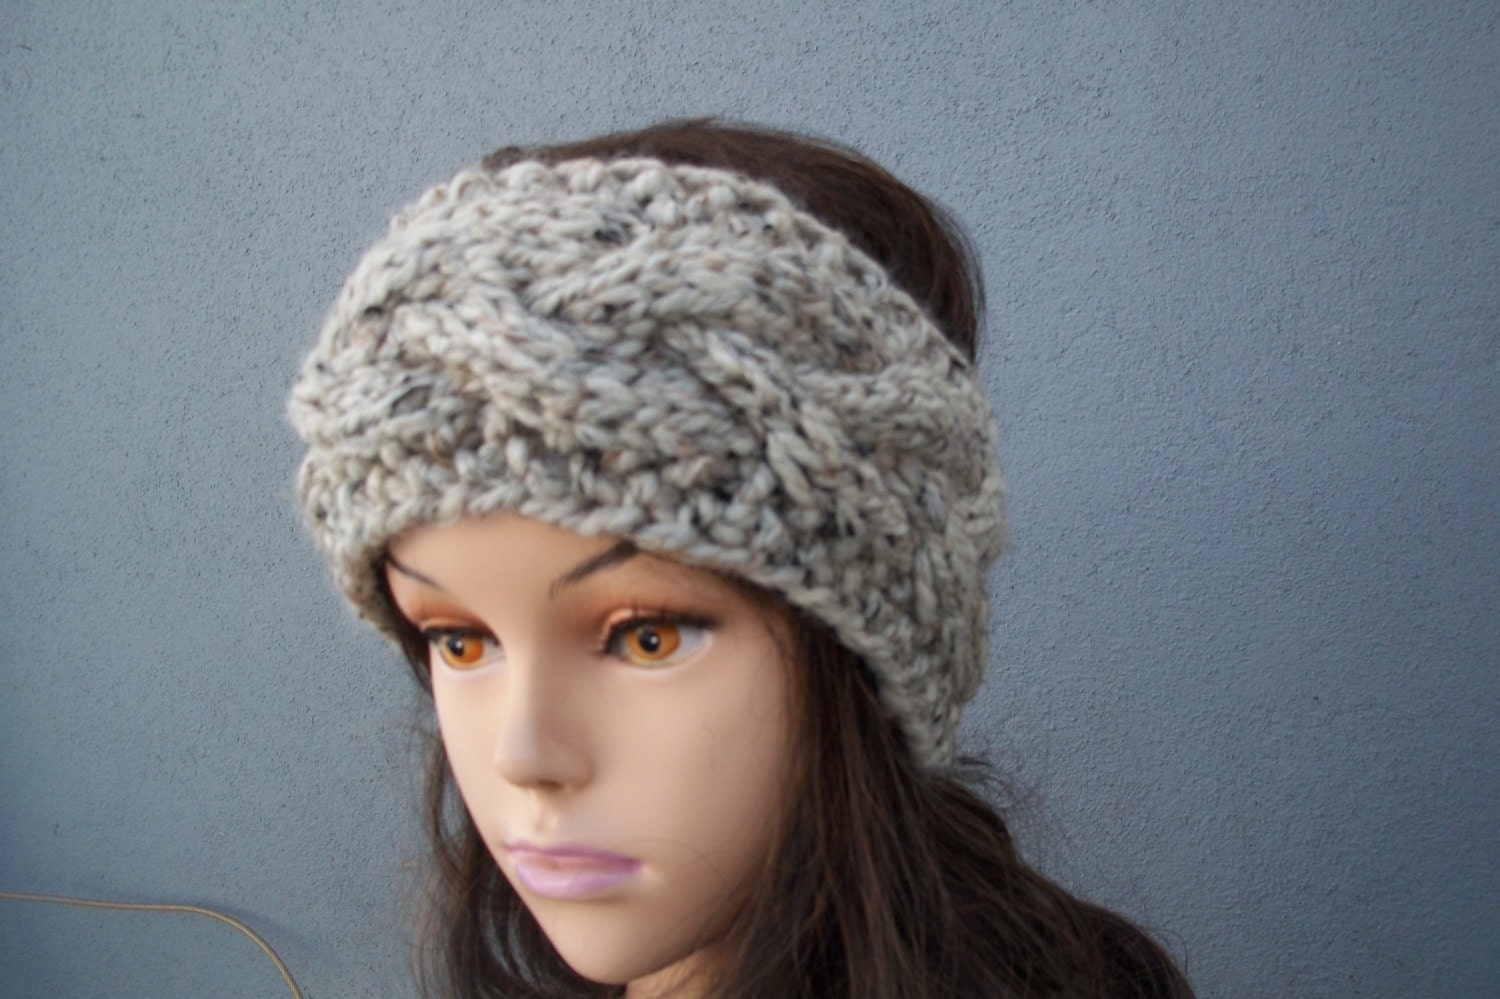 Knit Headband Pattern With Button : Cable knitted Winter headband with button closure women teen